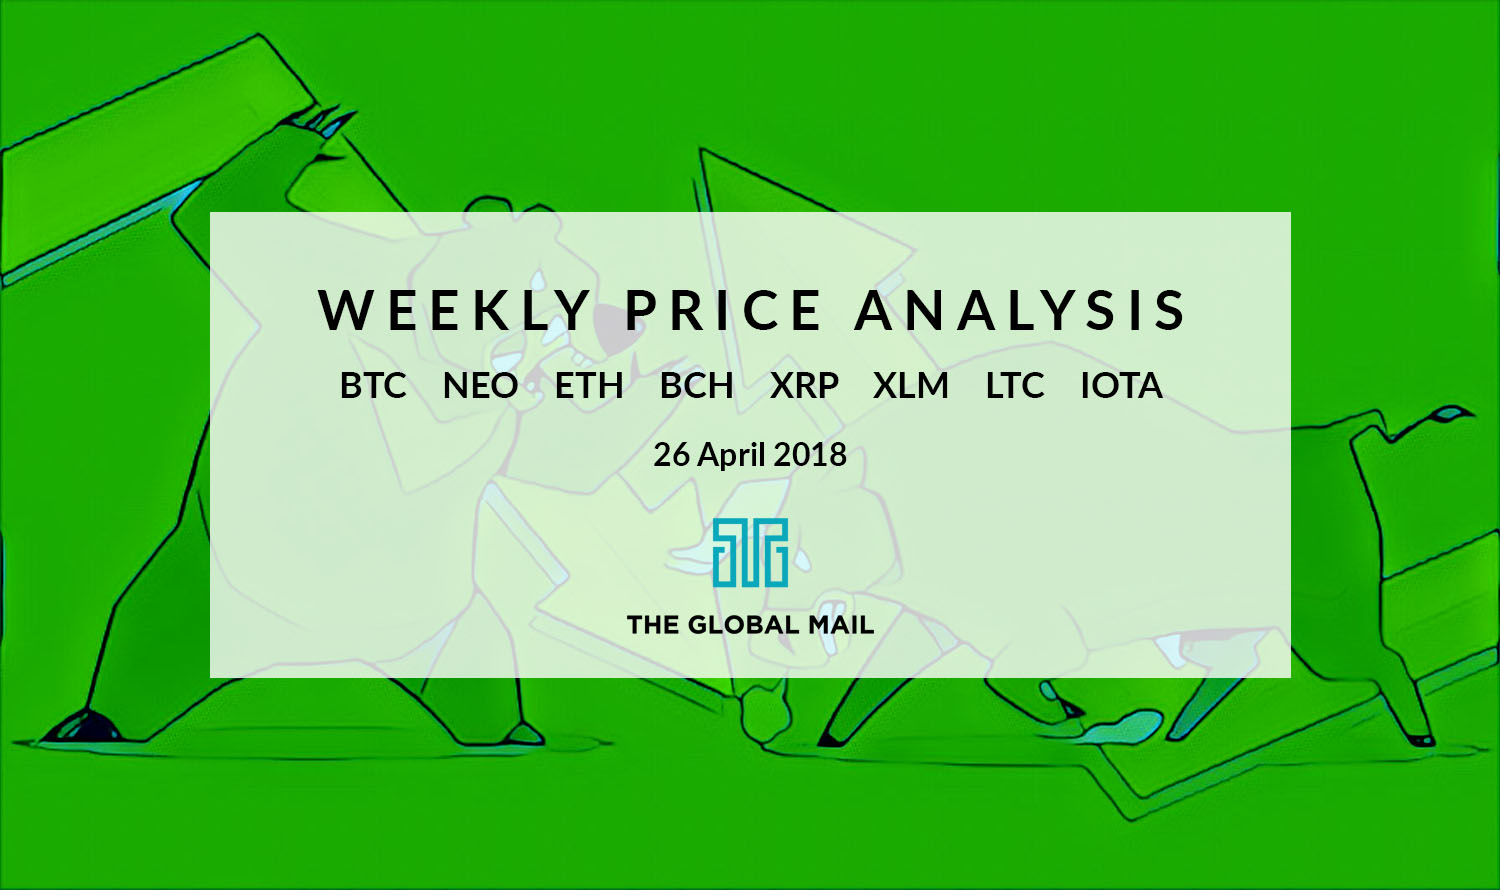 Weekly Price Analysis for April 26